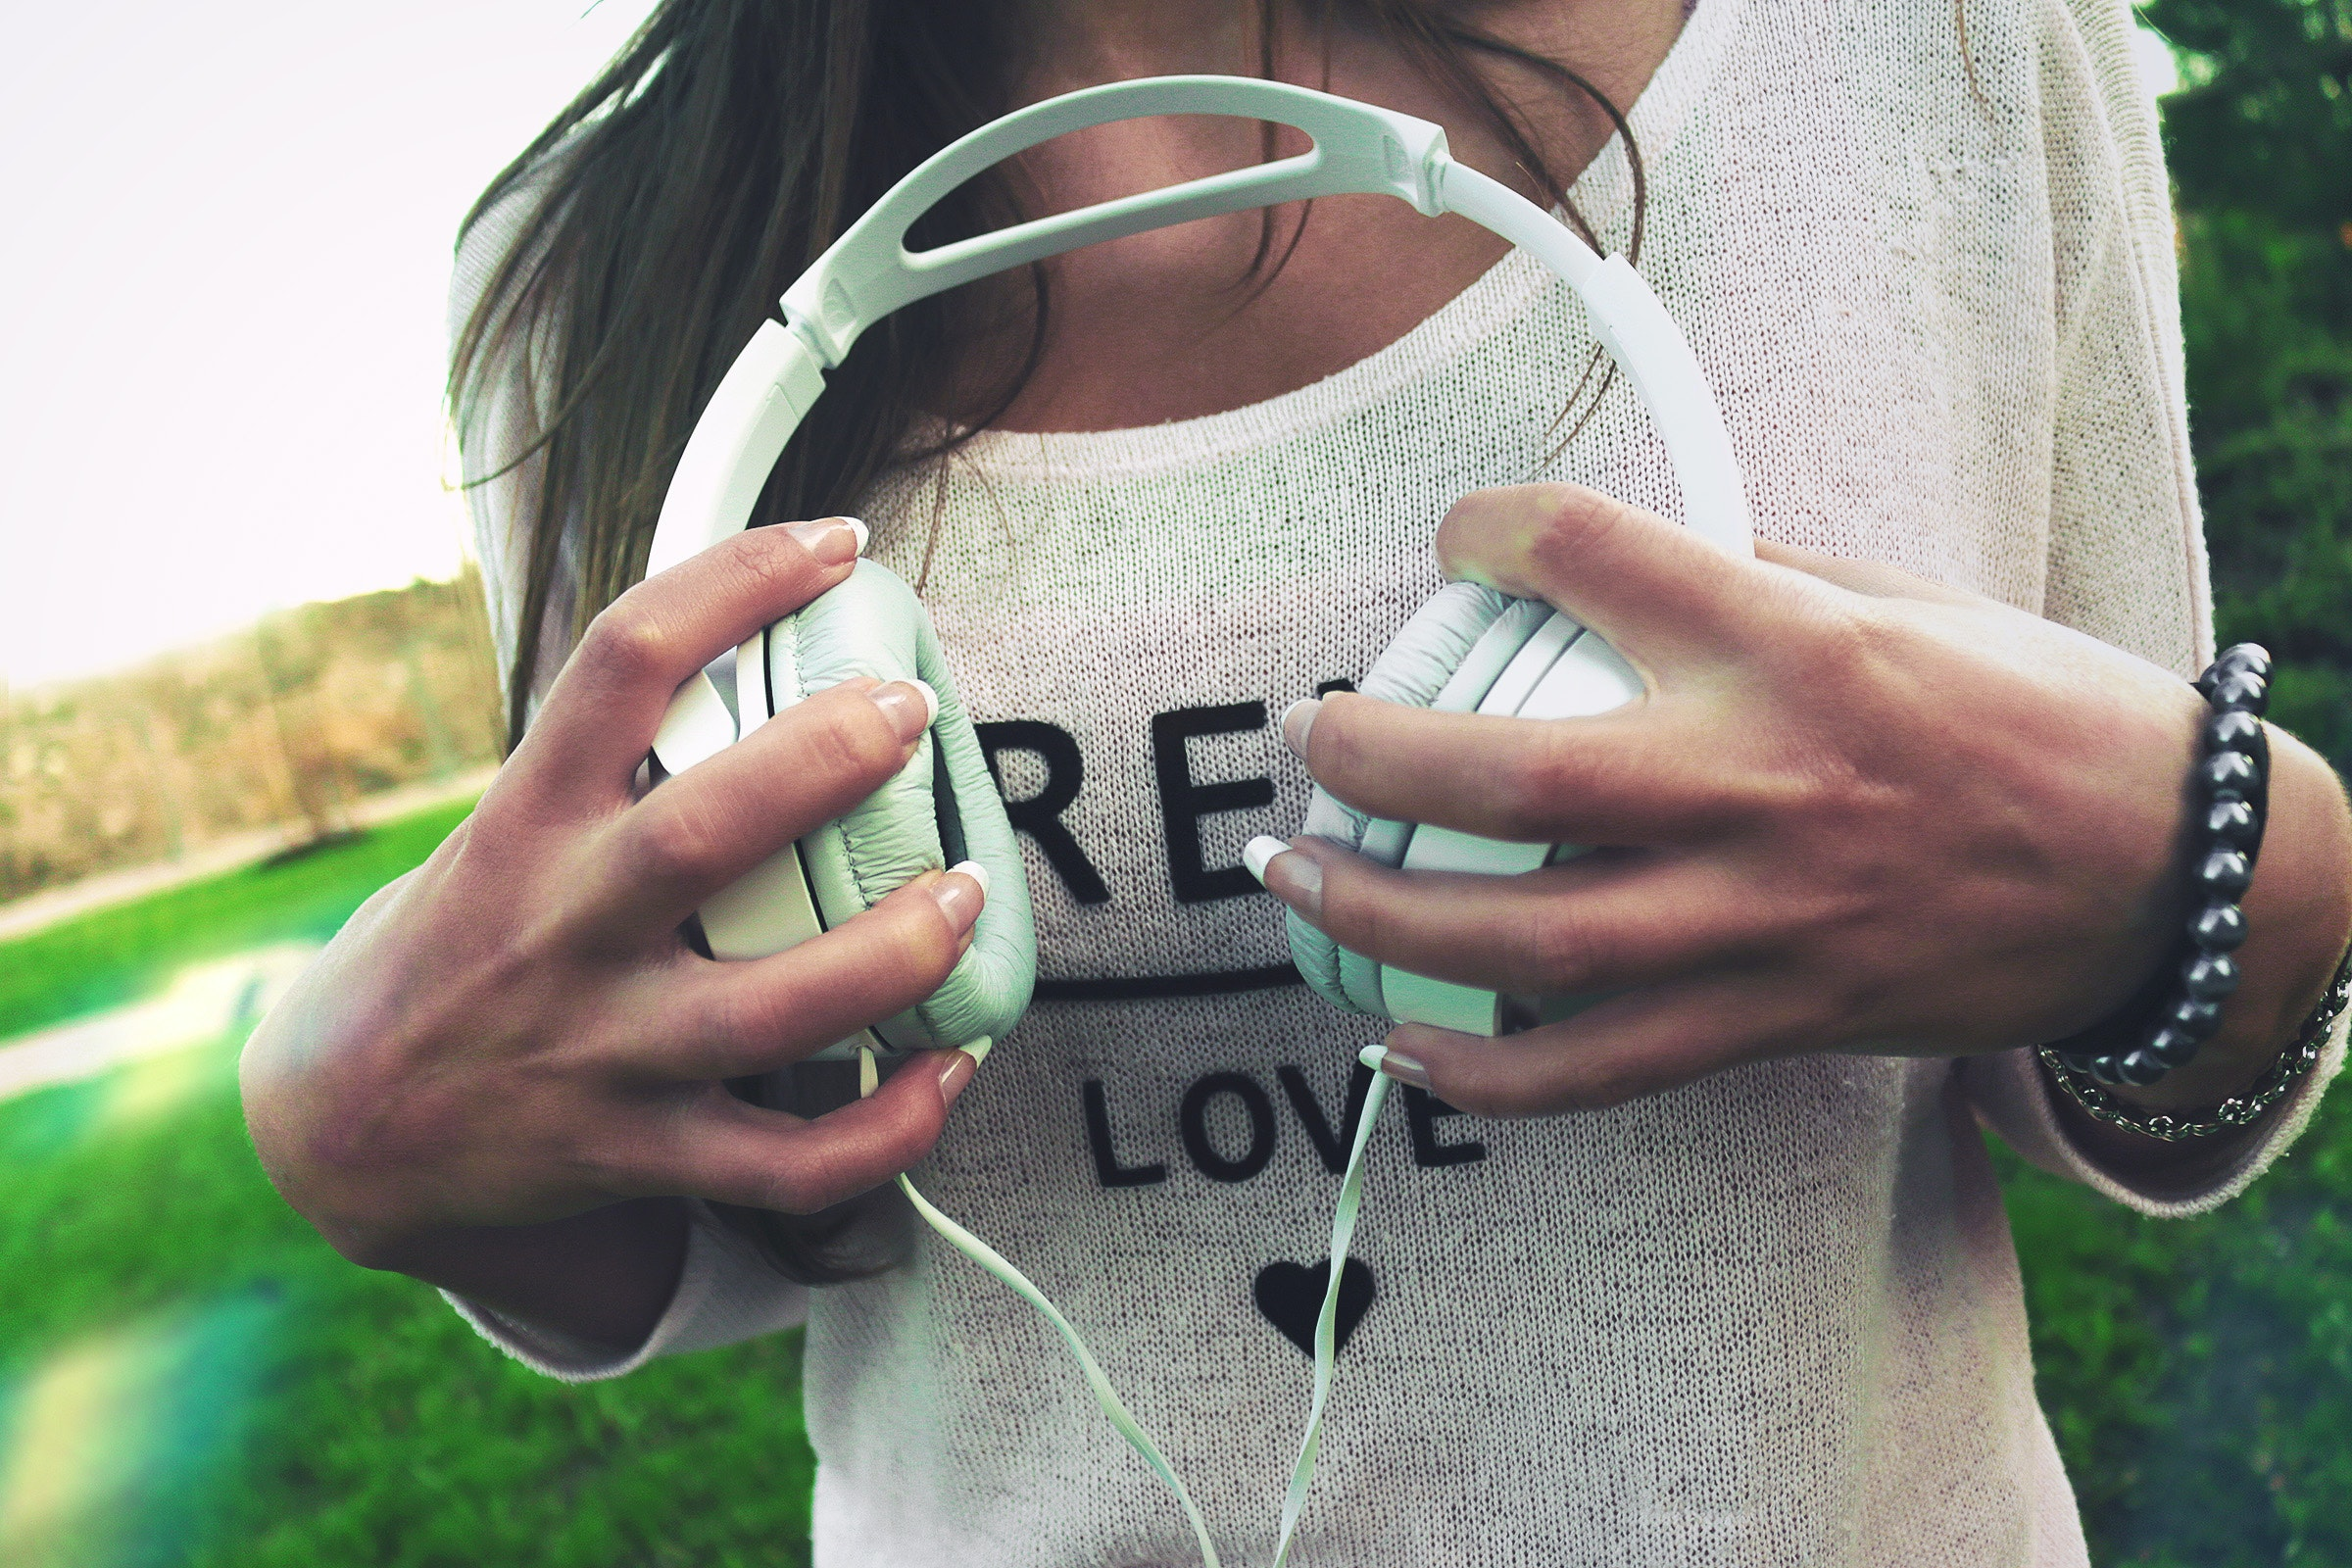 woman with headphones listening music  u00b7 free stock photo